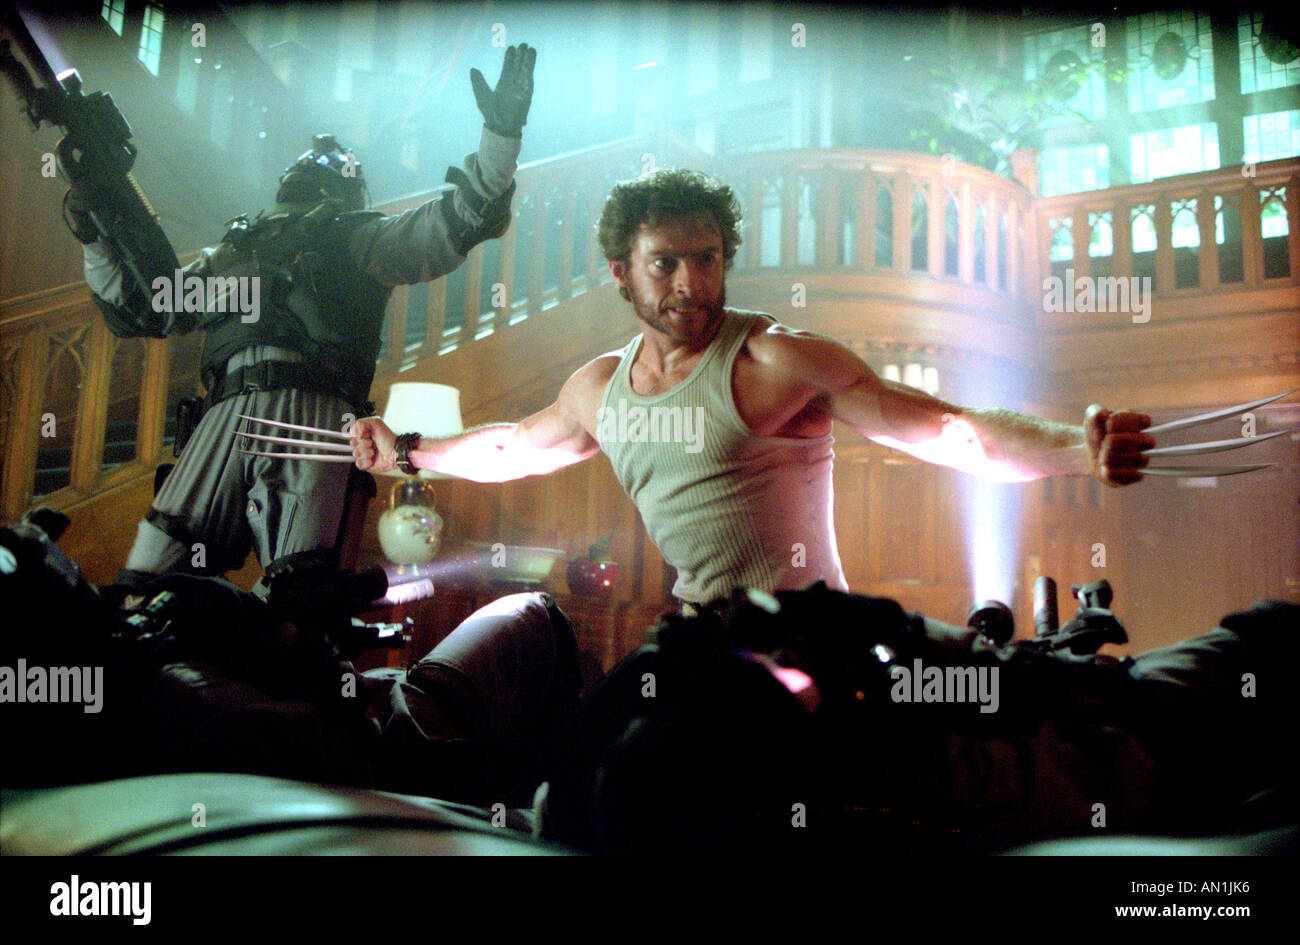 X2 aka X MEN 2 2002 TCF Marvel film with Hugh Jackman - Stock Image